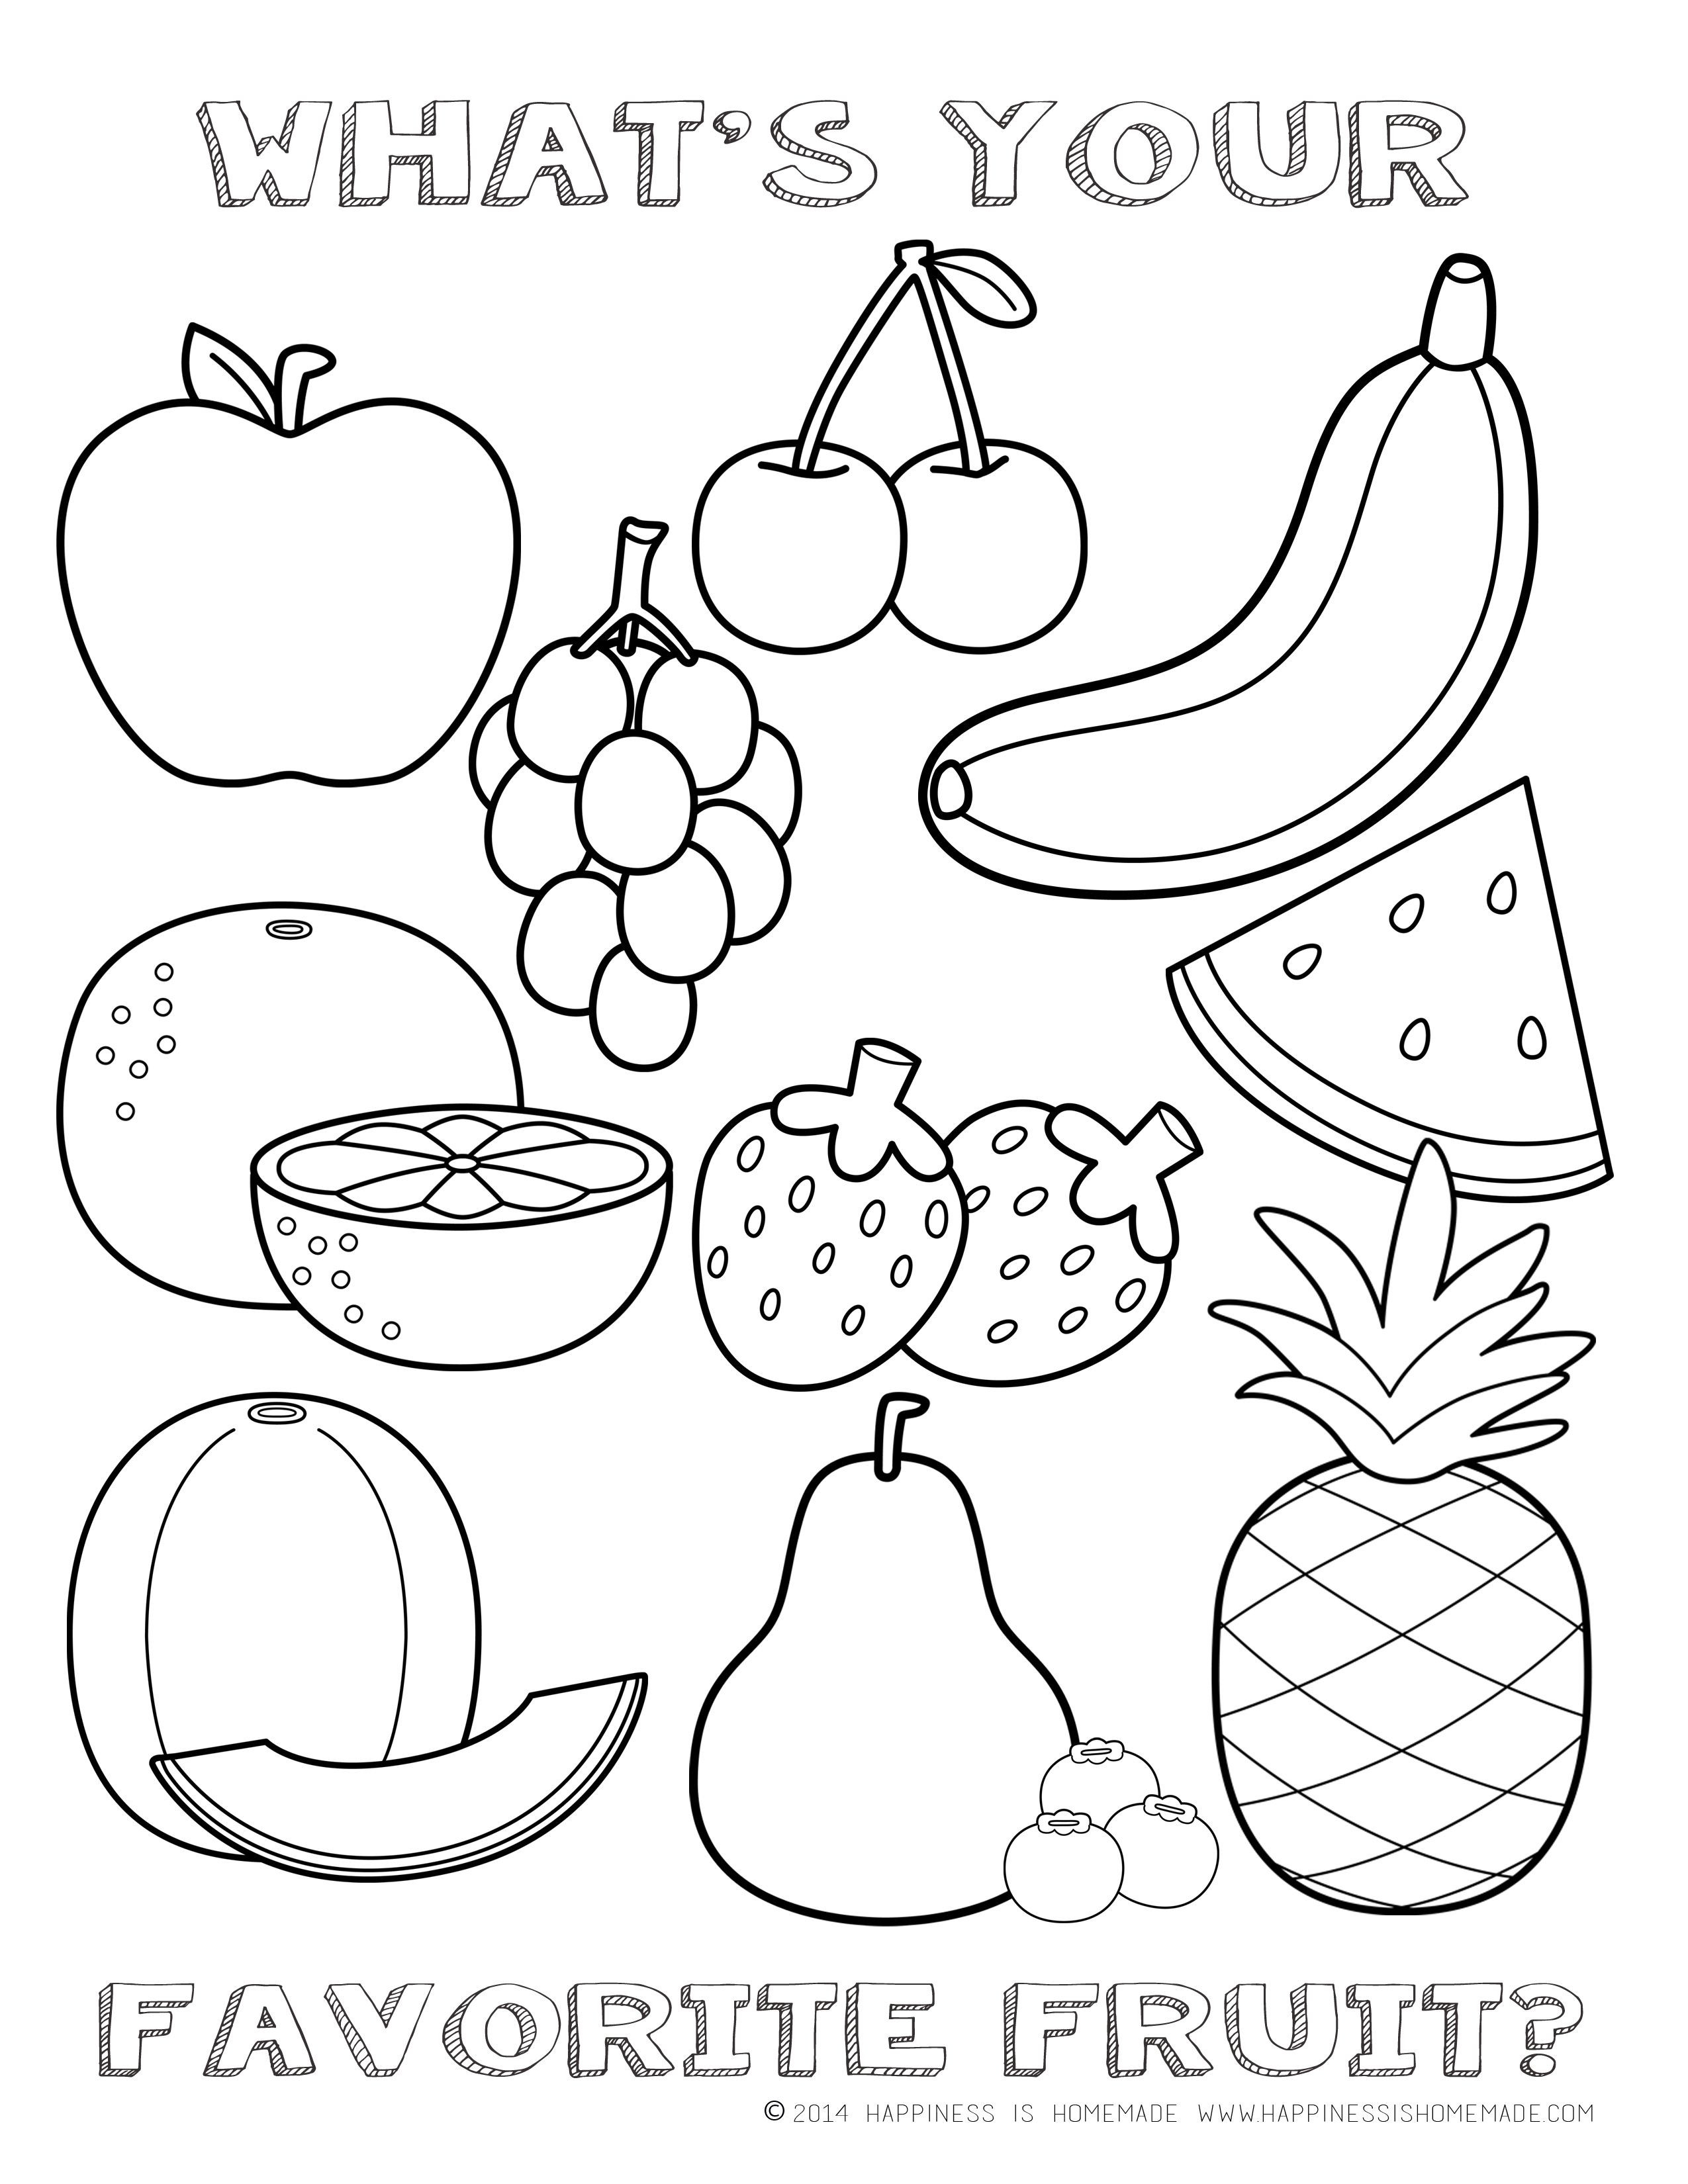 vegetables drawing for coloring vegetable coloring pages for childrens printable for free for coloring vegetables drawing